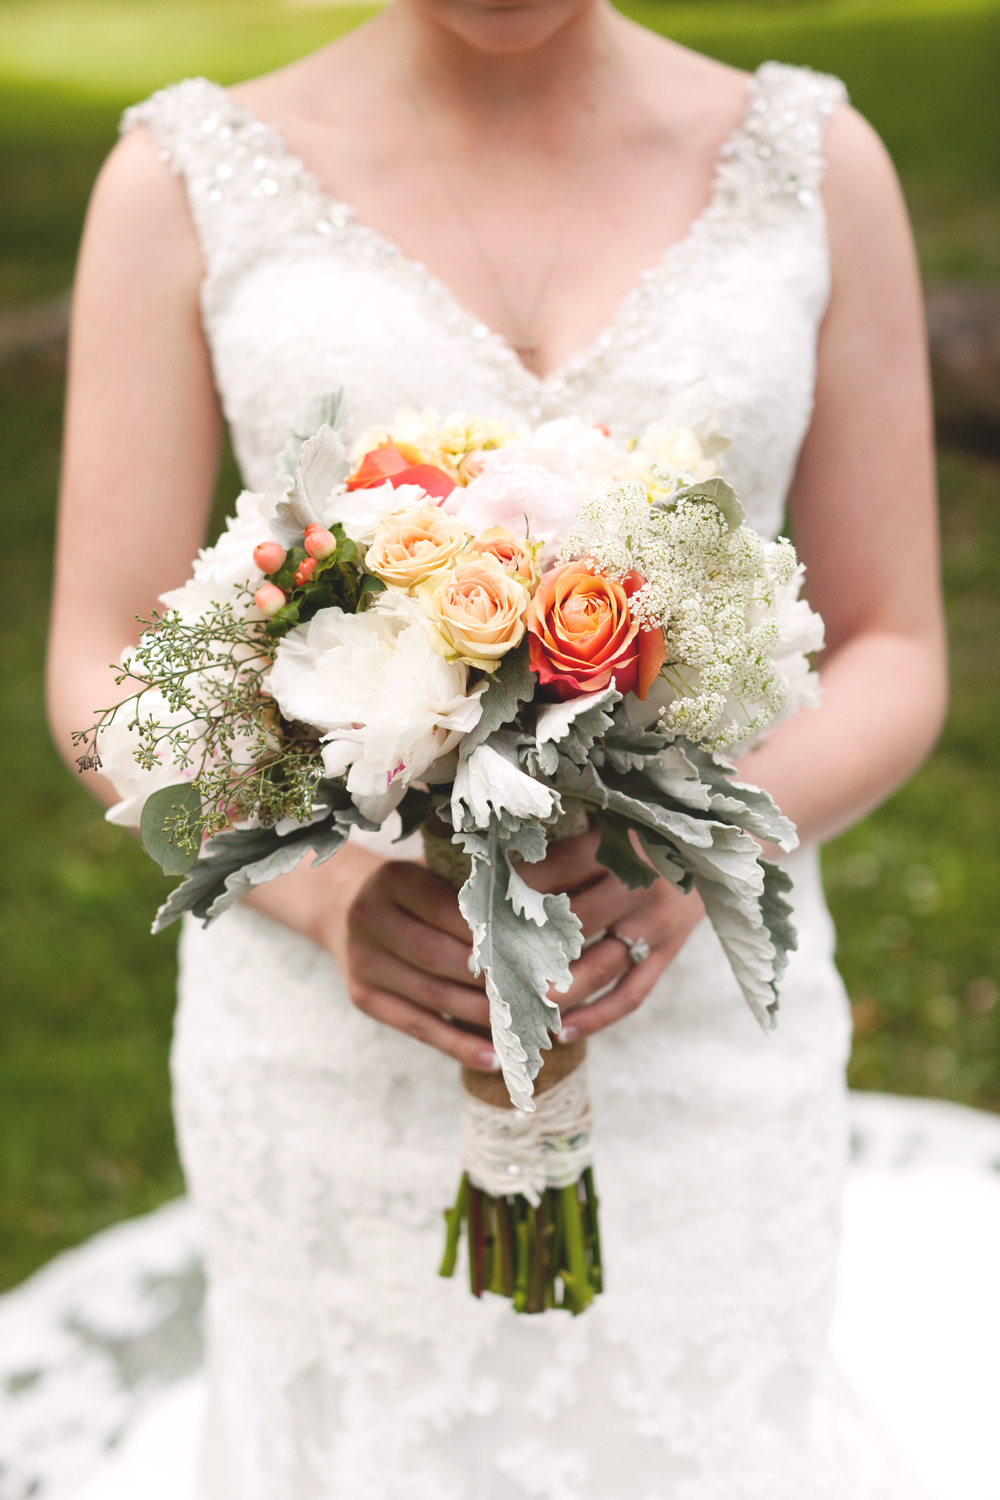 Orange and White Florals (Photo Credit: Sonlight Imaging)